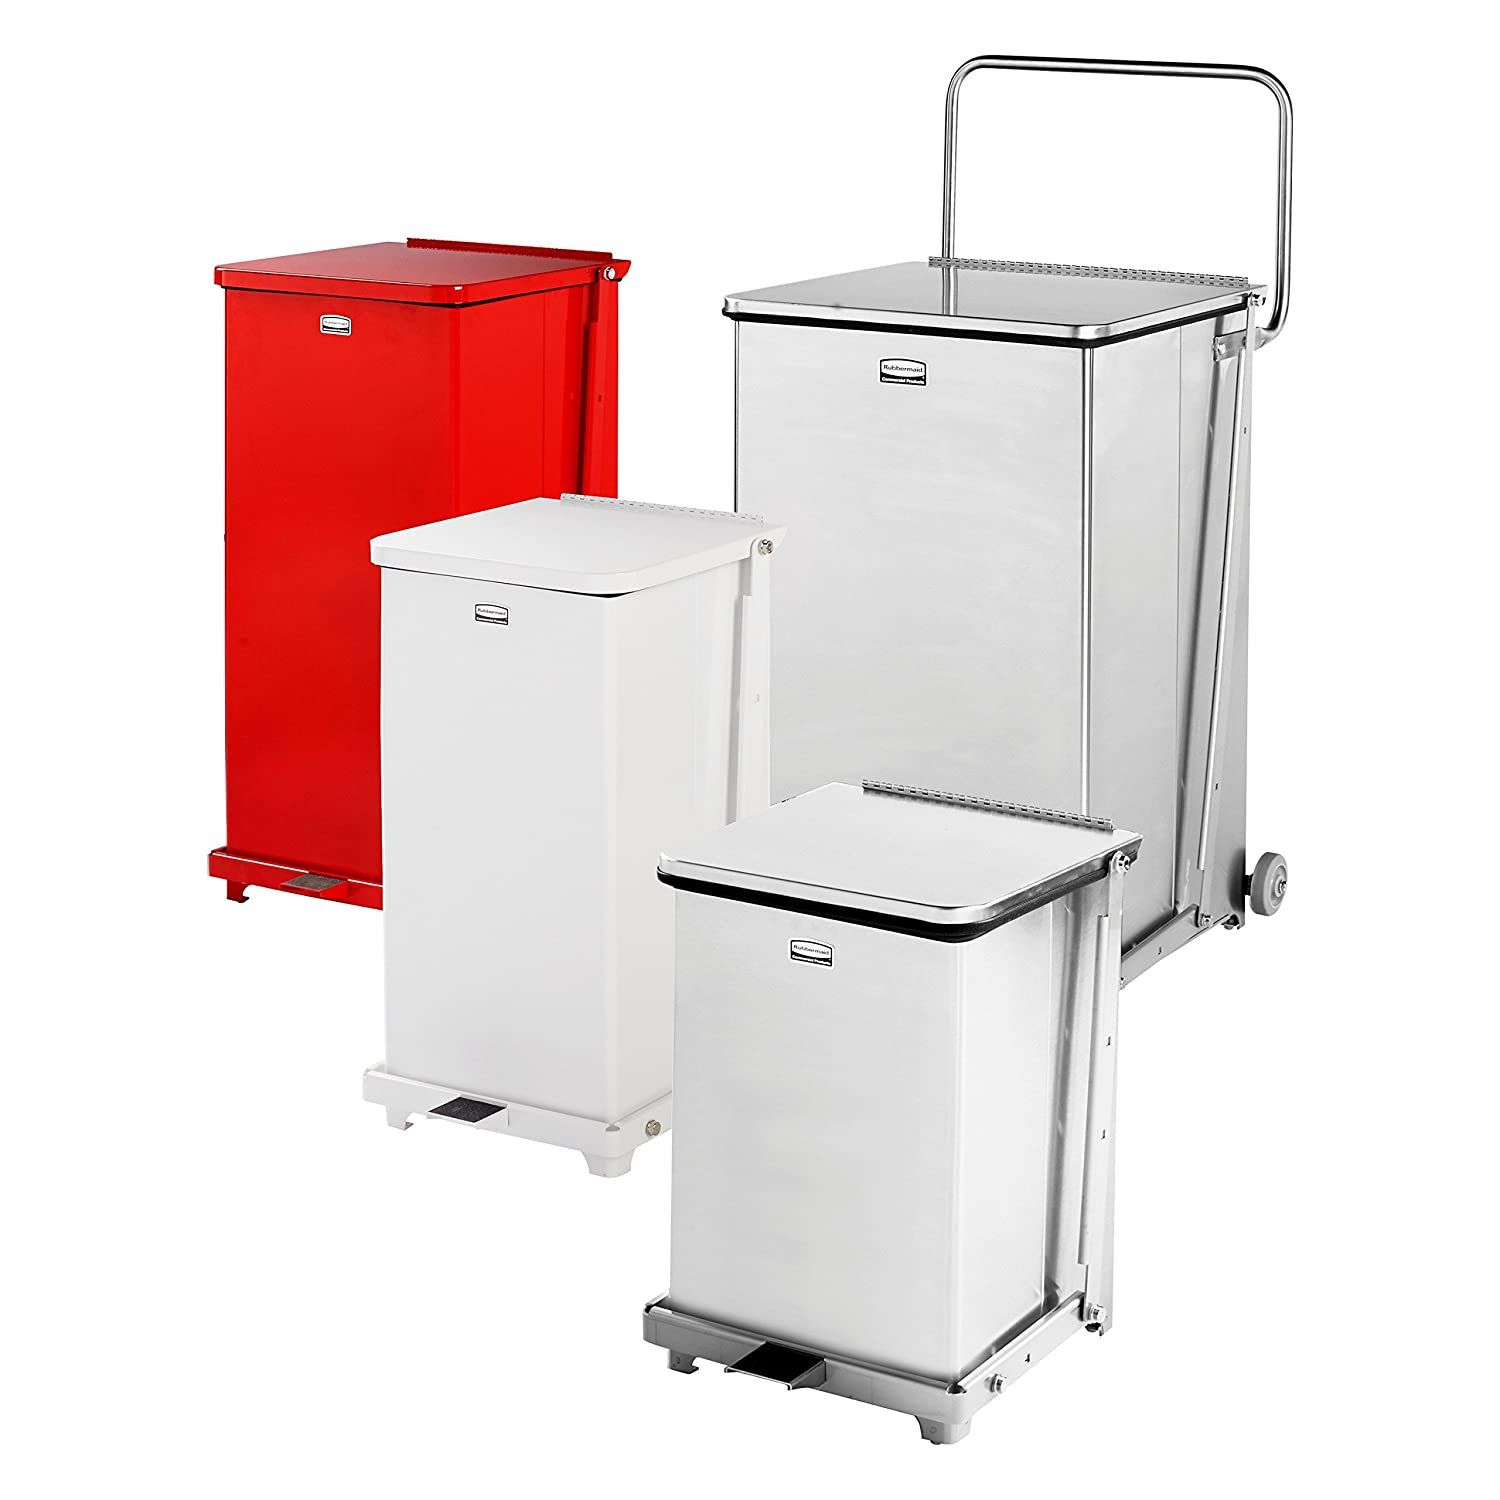 7-gallon Square with Retaining Band Rubbermaid Commercial FGQST7ERBWH The Silent Defenders Steel Step Trash Can White Rubbermaid Commercial Products